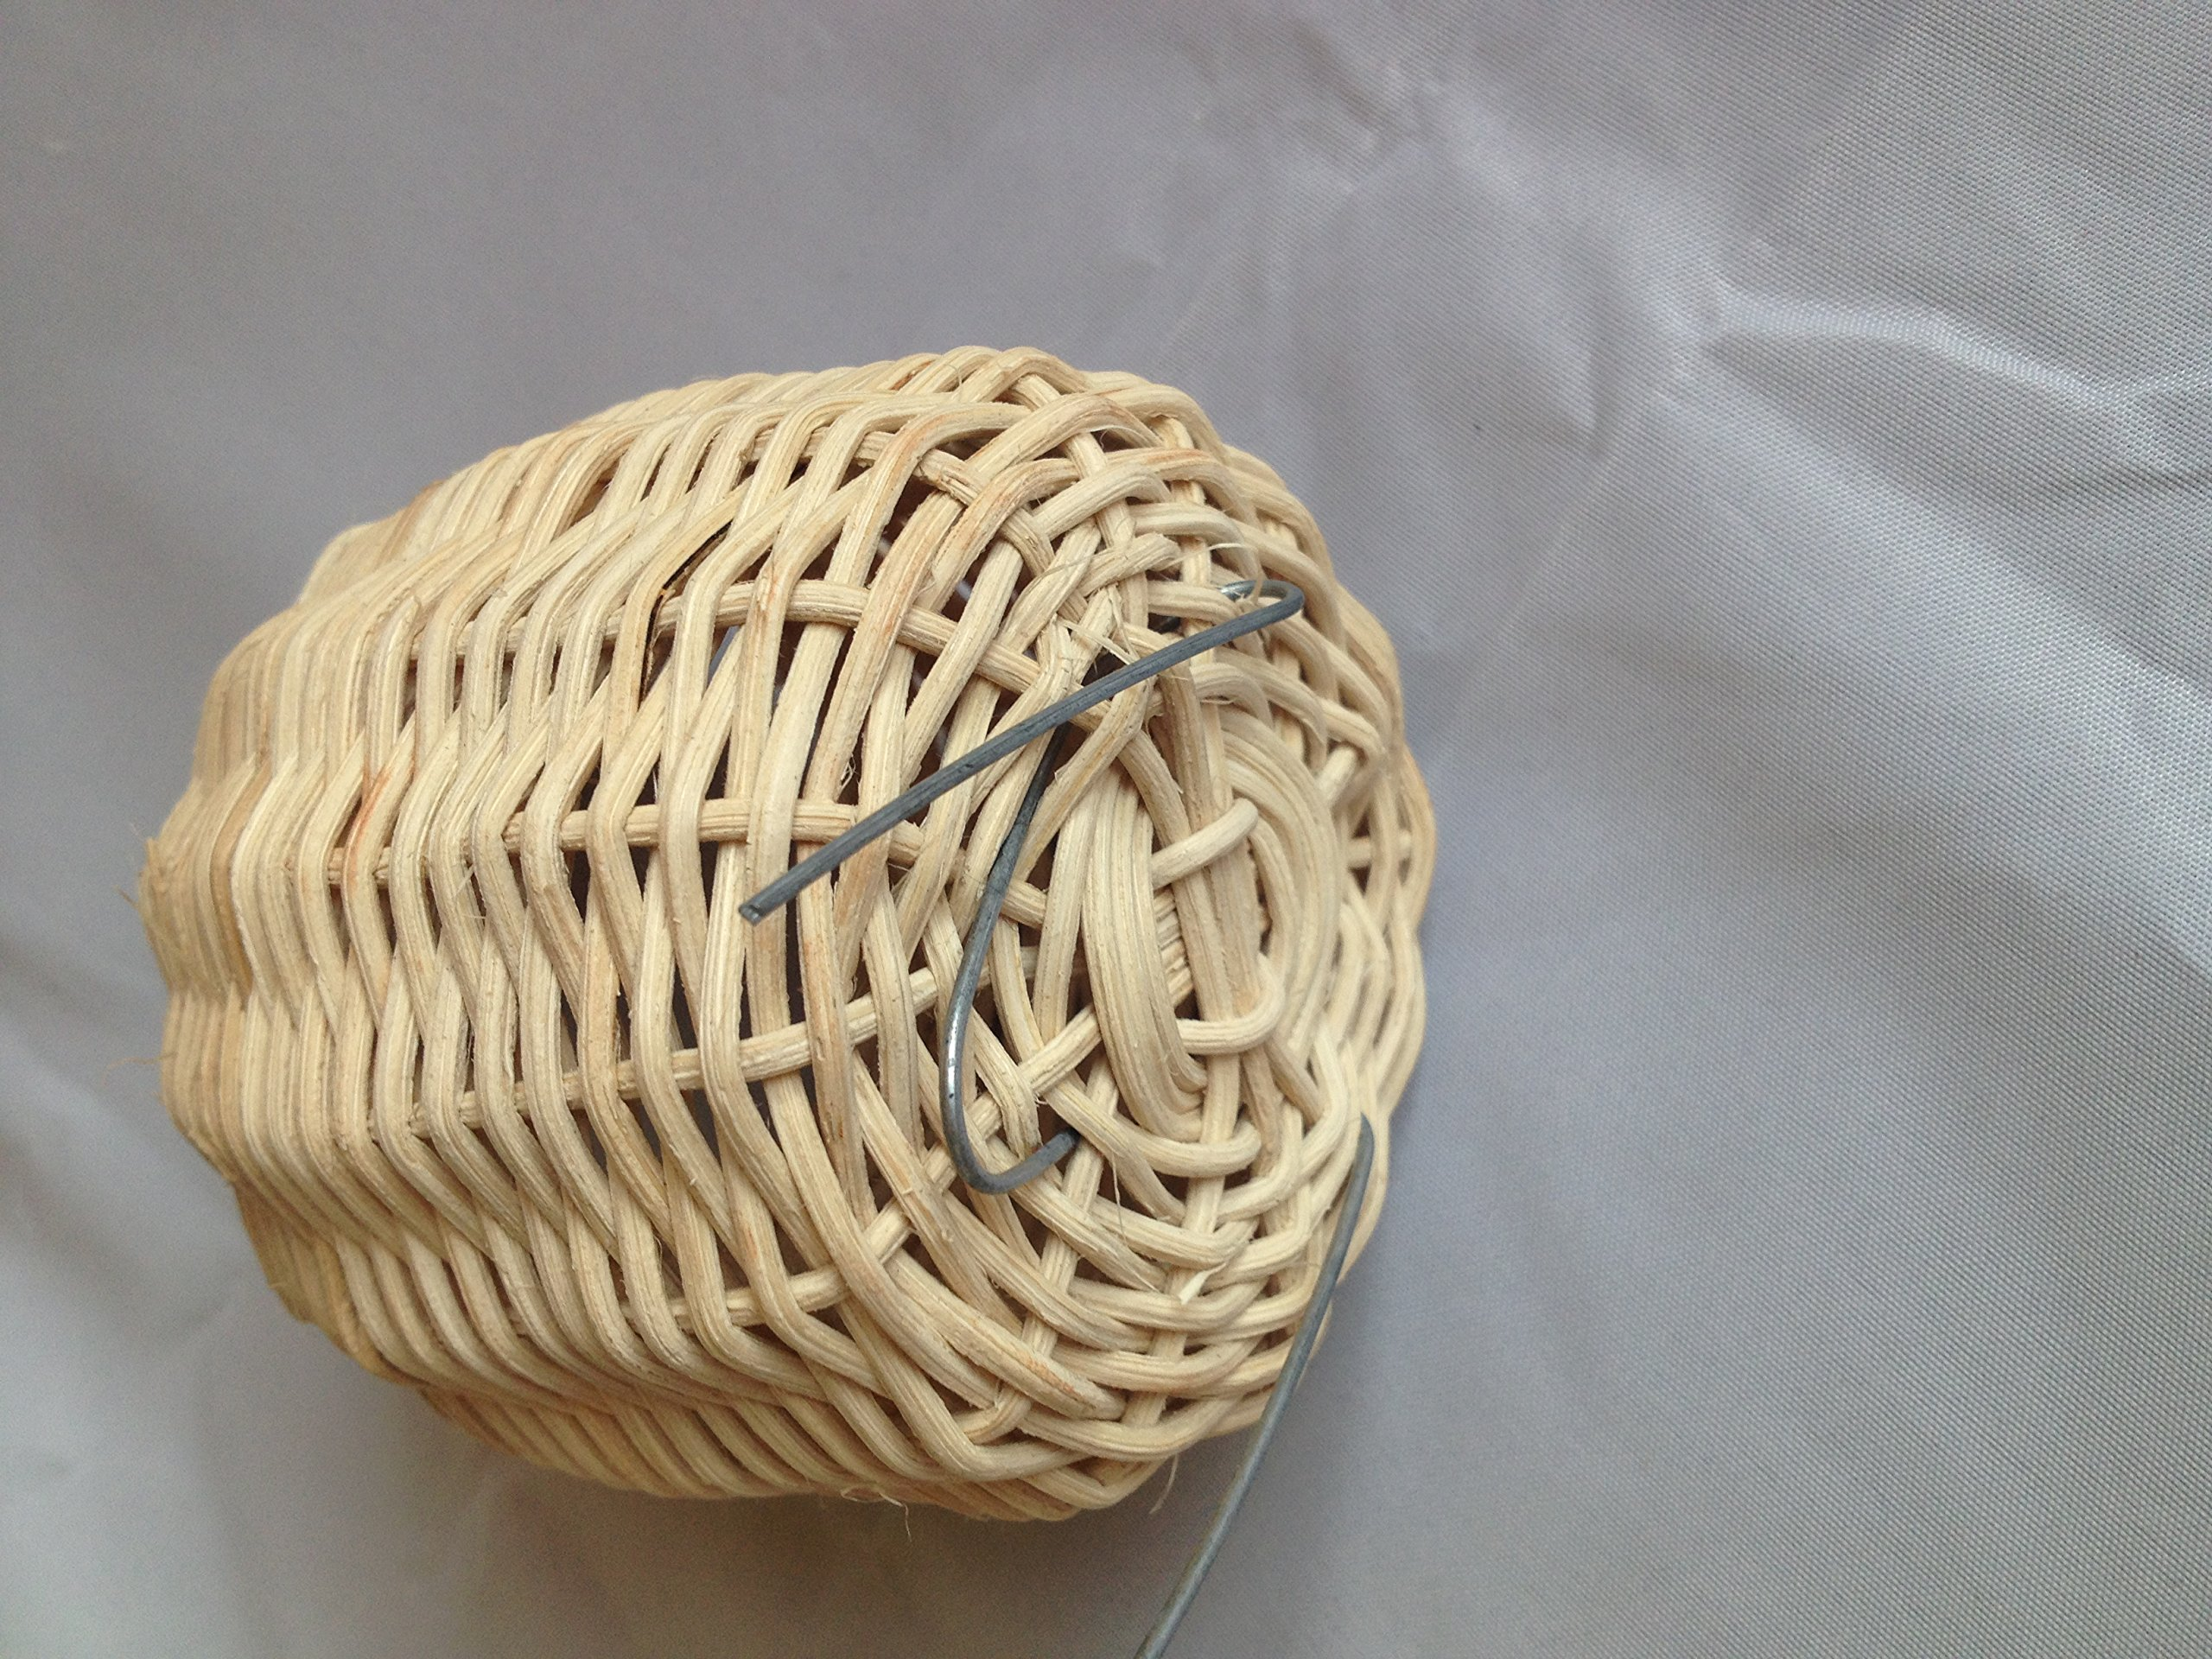 Handmade Rattan Nature's Nest Finch Birds 3x5 Inch by Power of Dream (Image #5)